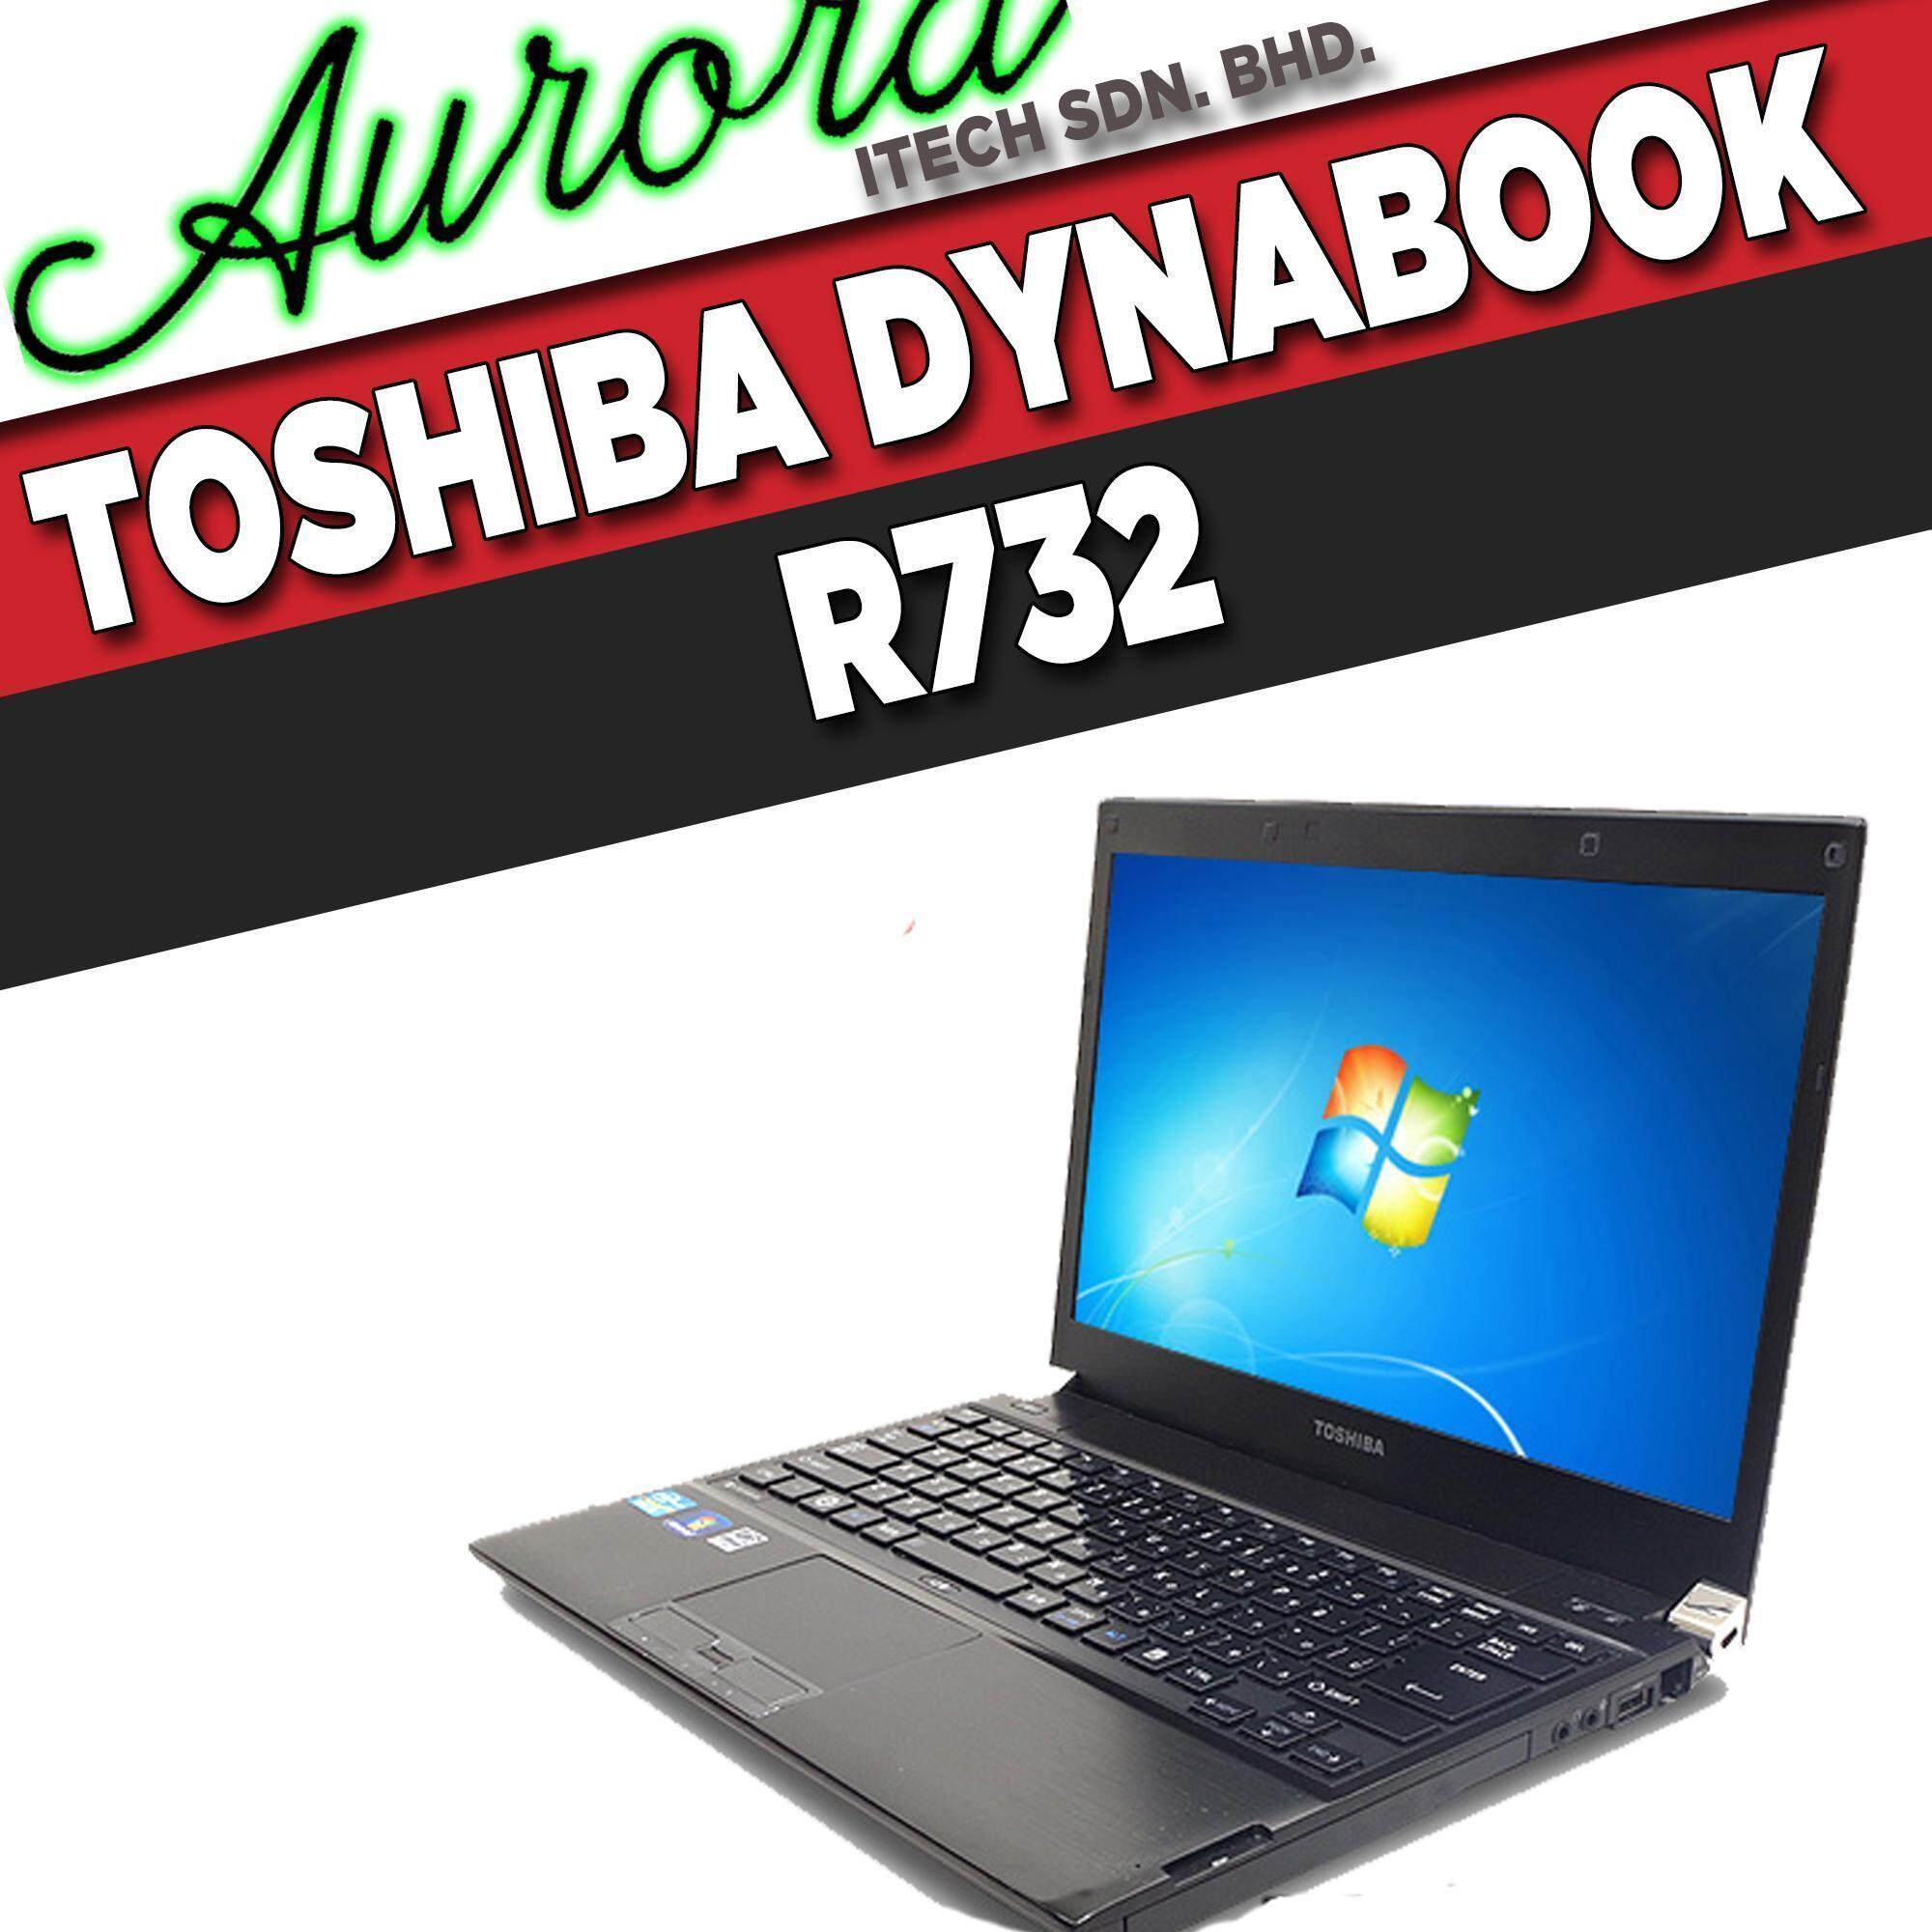 (REFURBISHED) TOSHIBA DYNABOOK R732/ I5-3RD GEN/ 4GB DDR3 RAM/ 320GB SATA HDD/ 13-INCH LCD/ 1 YEARWARRANTY, FREE MOUSE Malaysia